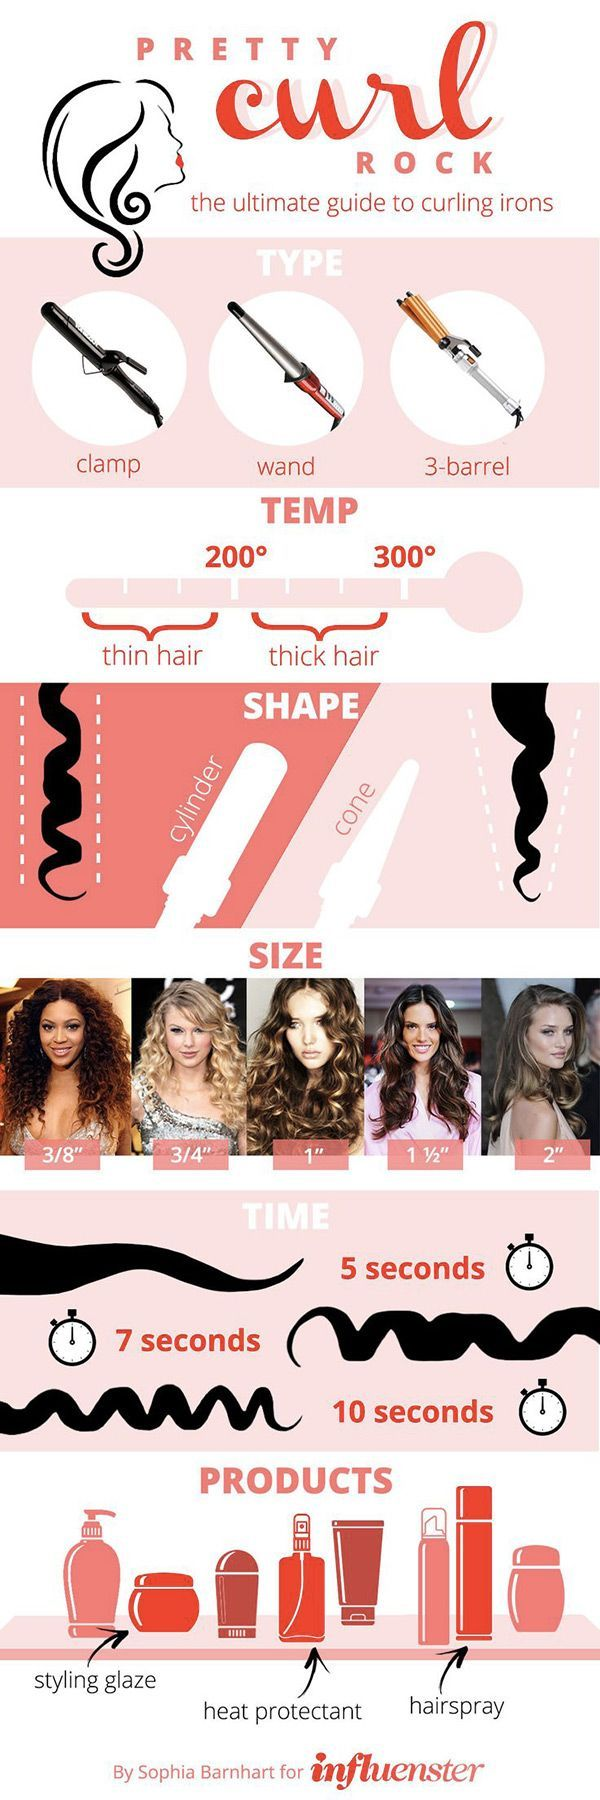 Swell 1000 Ideas About Curl Your Hair On Pinterest Quick Easy Hairstyles For Men Maxibearus